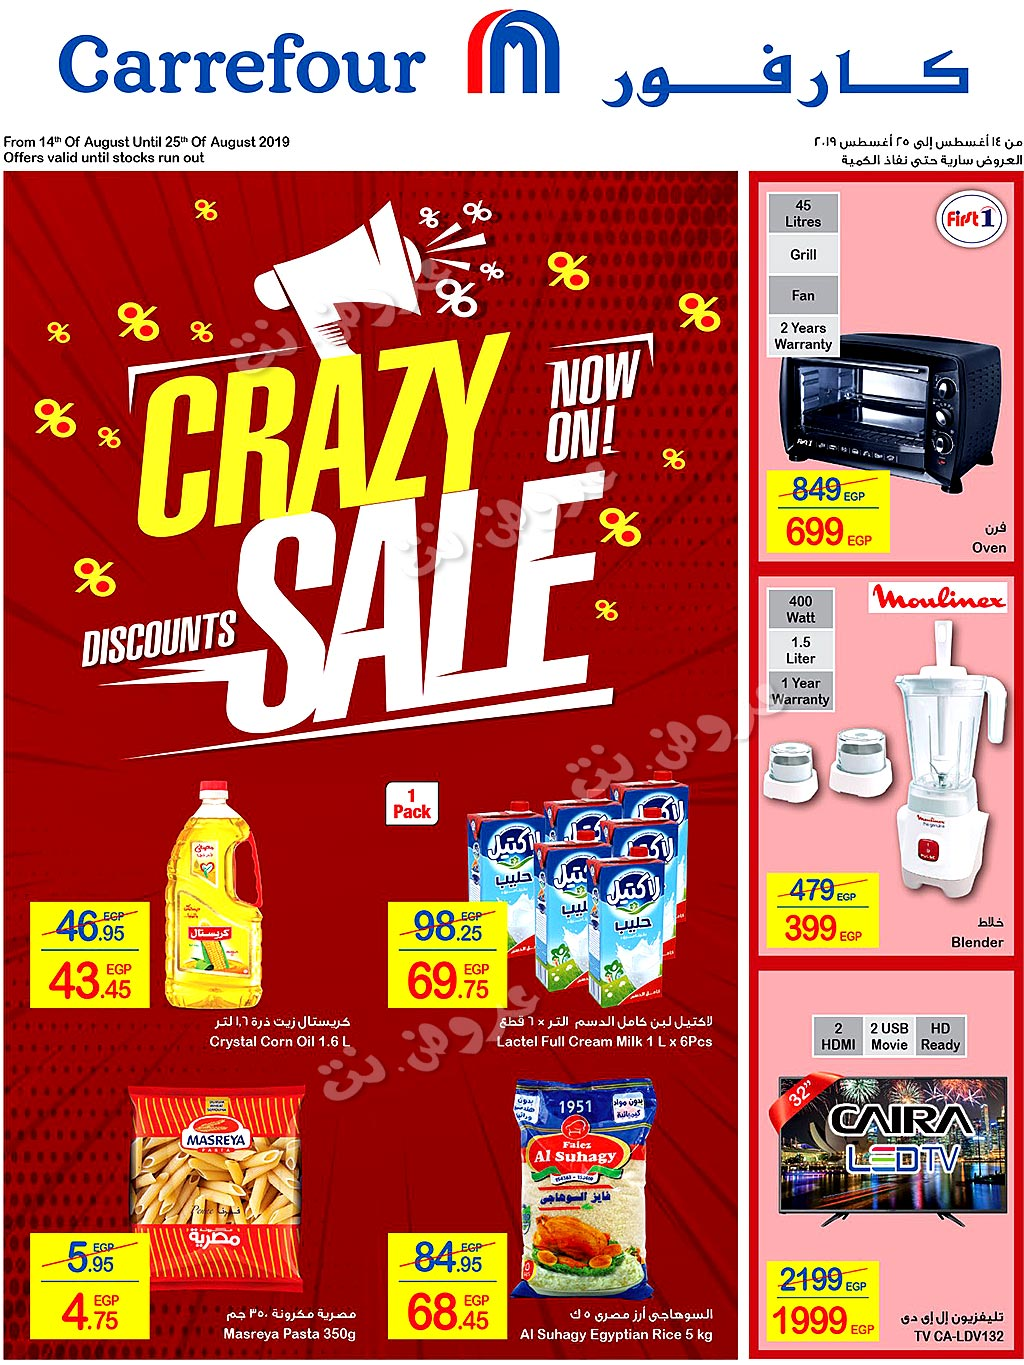 carrefour offers from 14aug to 25aug 2019 page number 1 عروض كارفور من 14 أغسطس حتى 25 أغسطس 2019 صفحة رقم 1